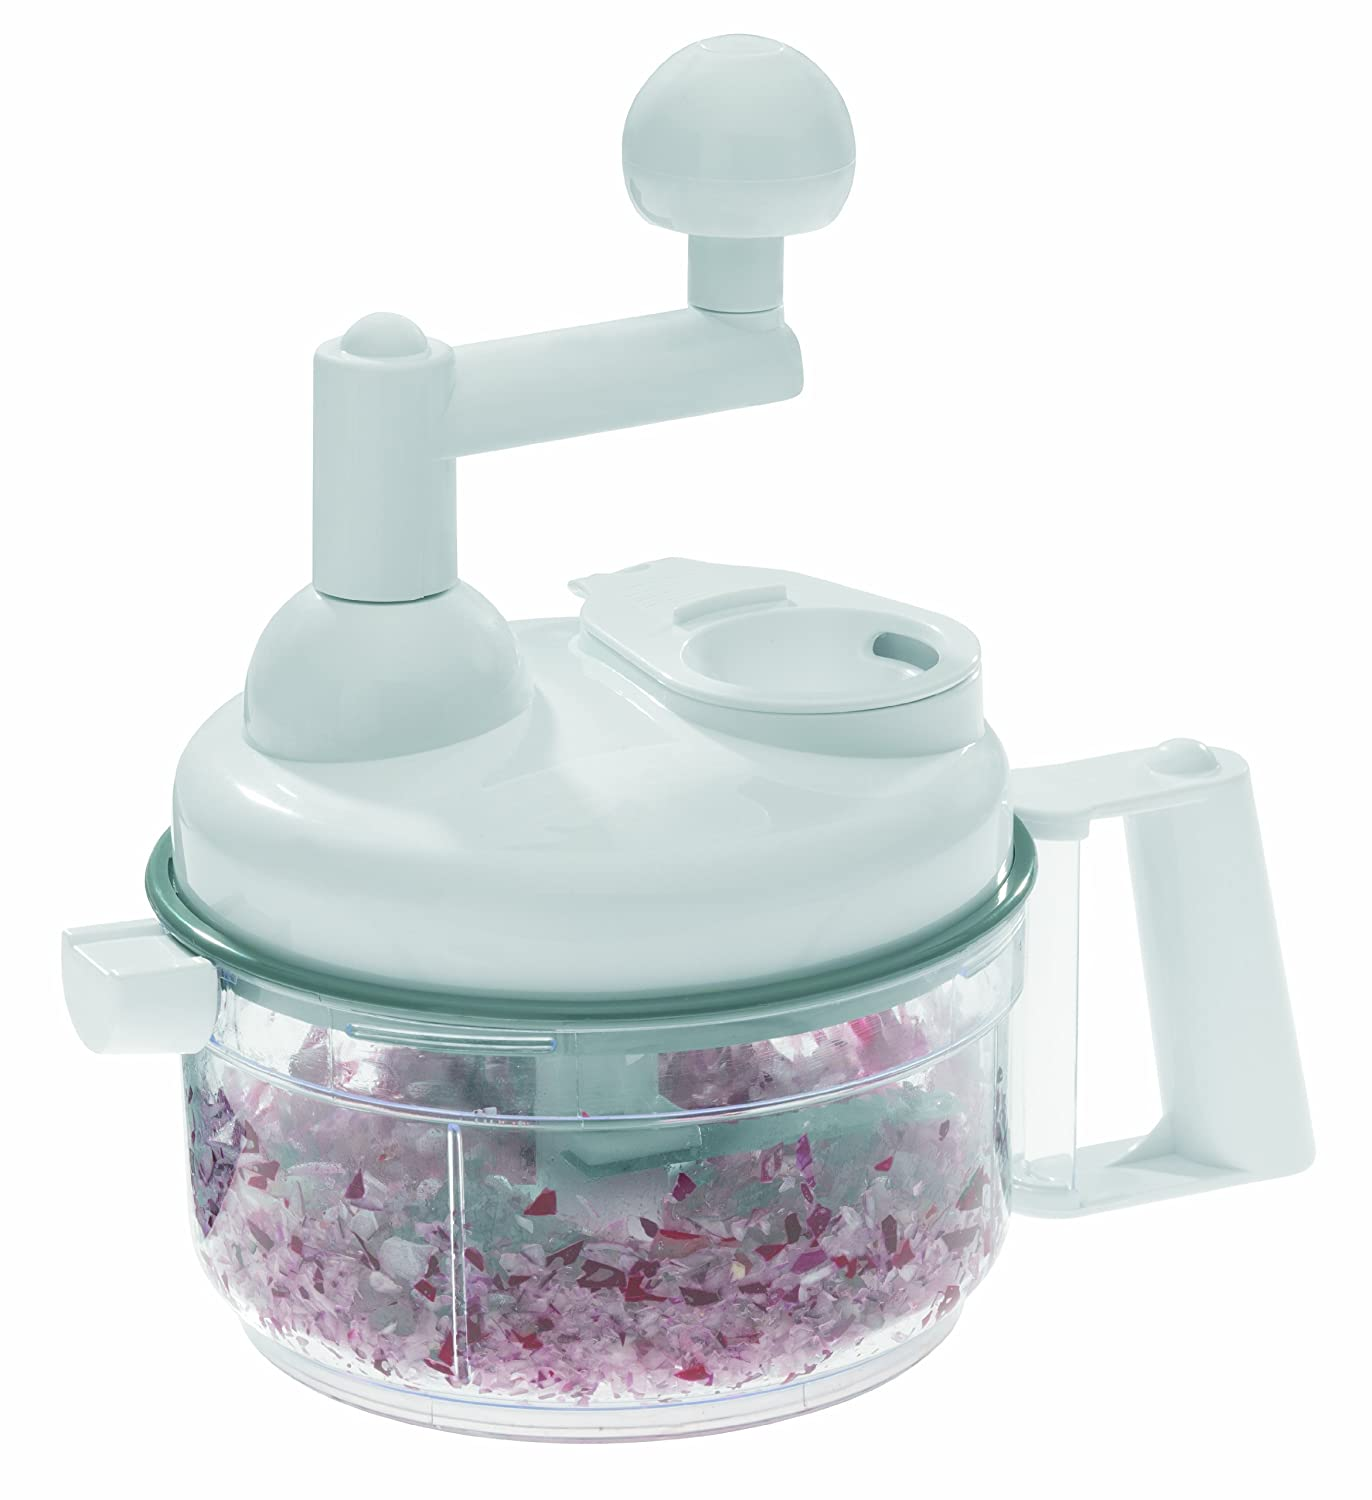 Amazon.com: Westmark Germany Manual Food Processor Kitchen Witch ...